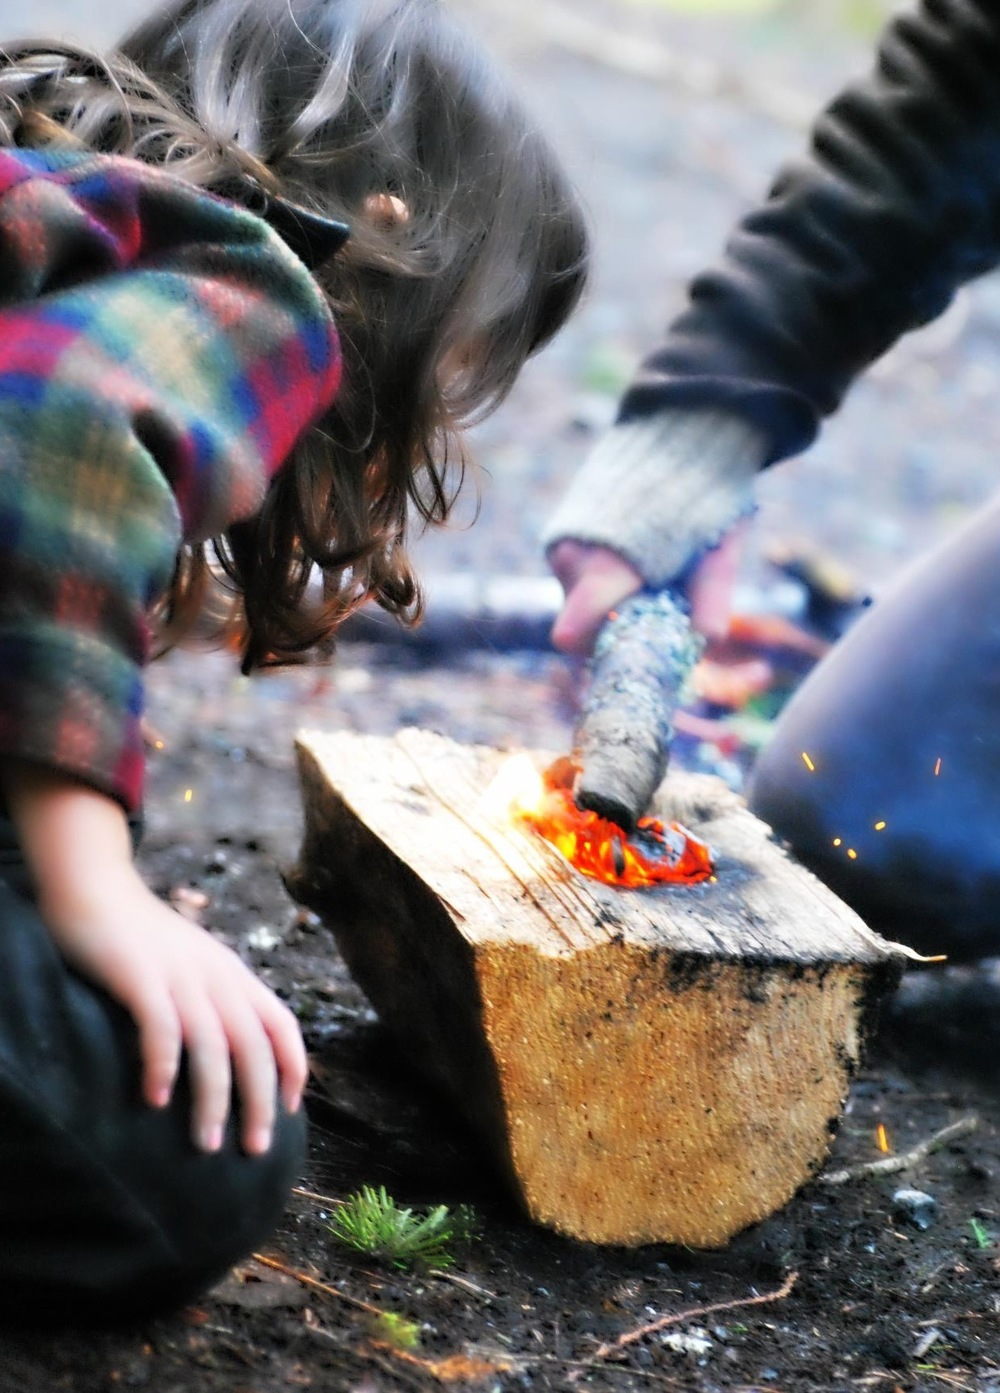 In our rainy Seattle climate we make fires many days to keep warm. Our students love to interact with fire in a safe way.